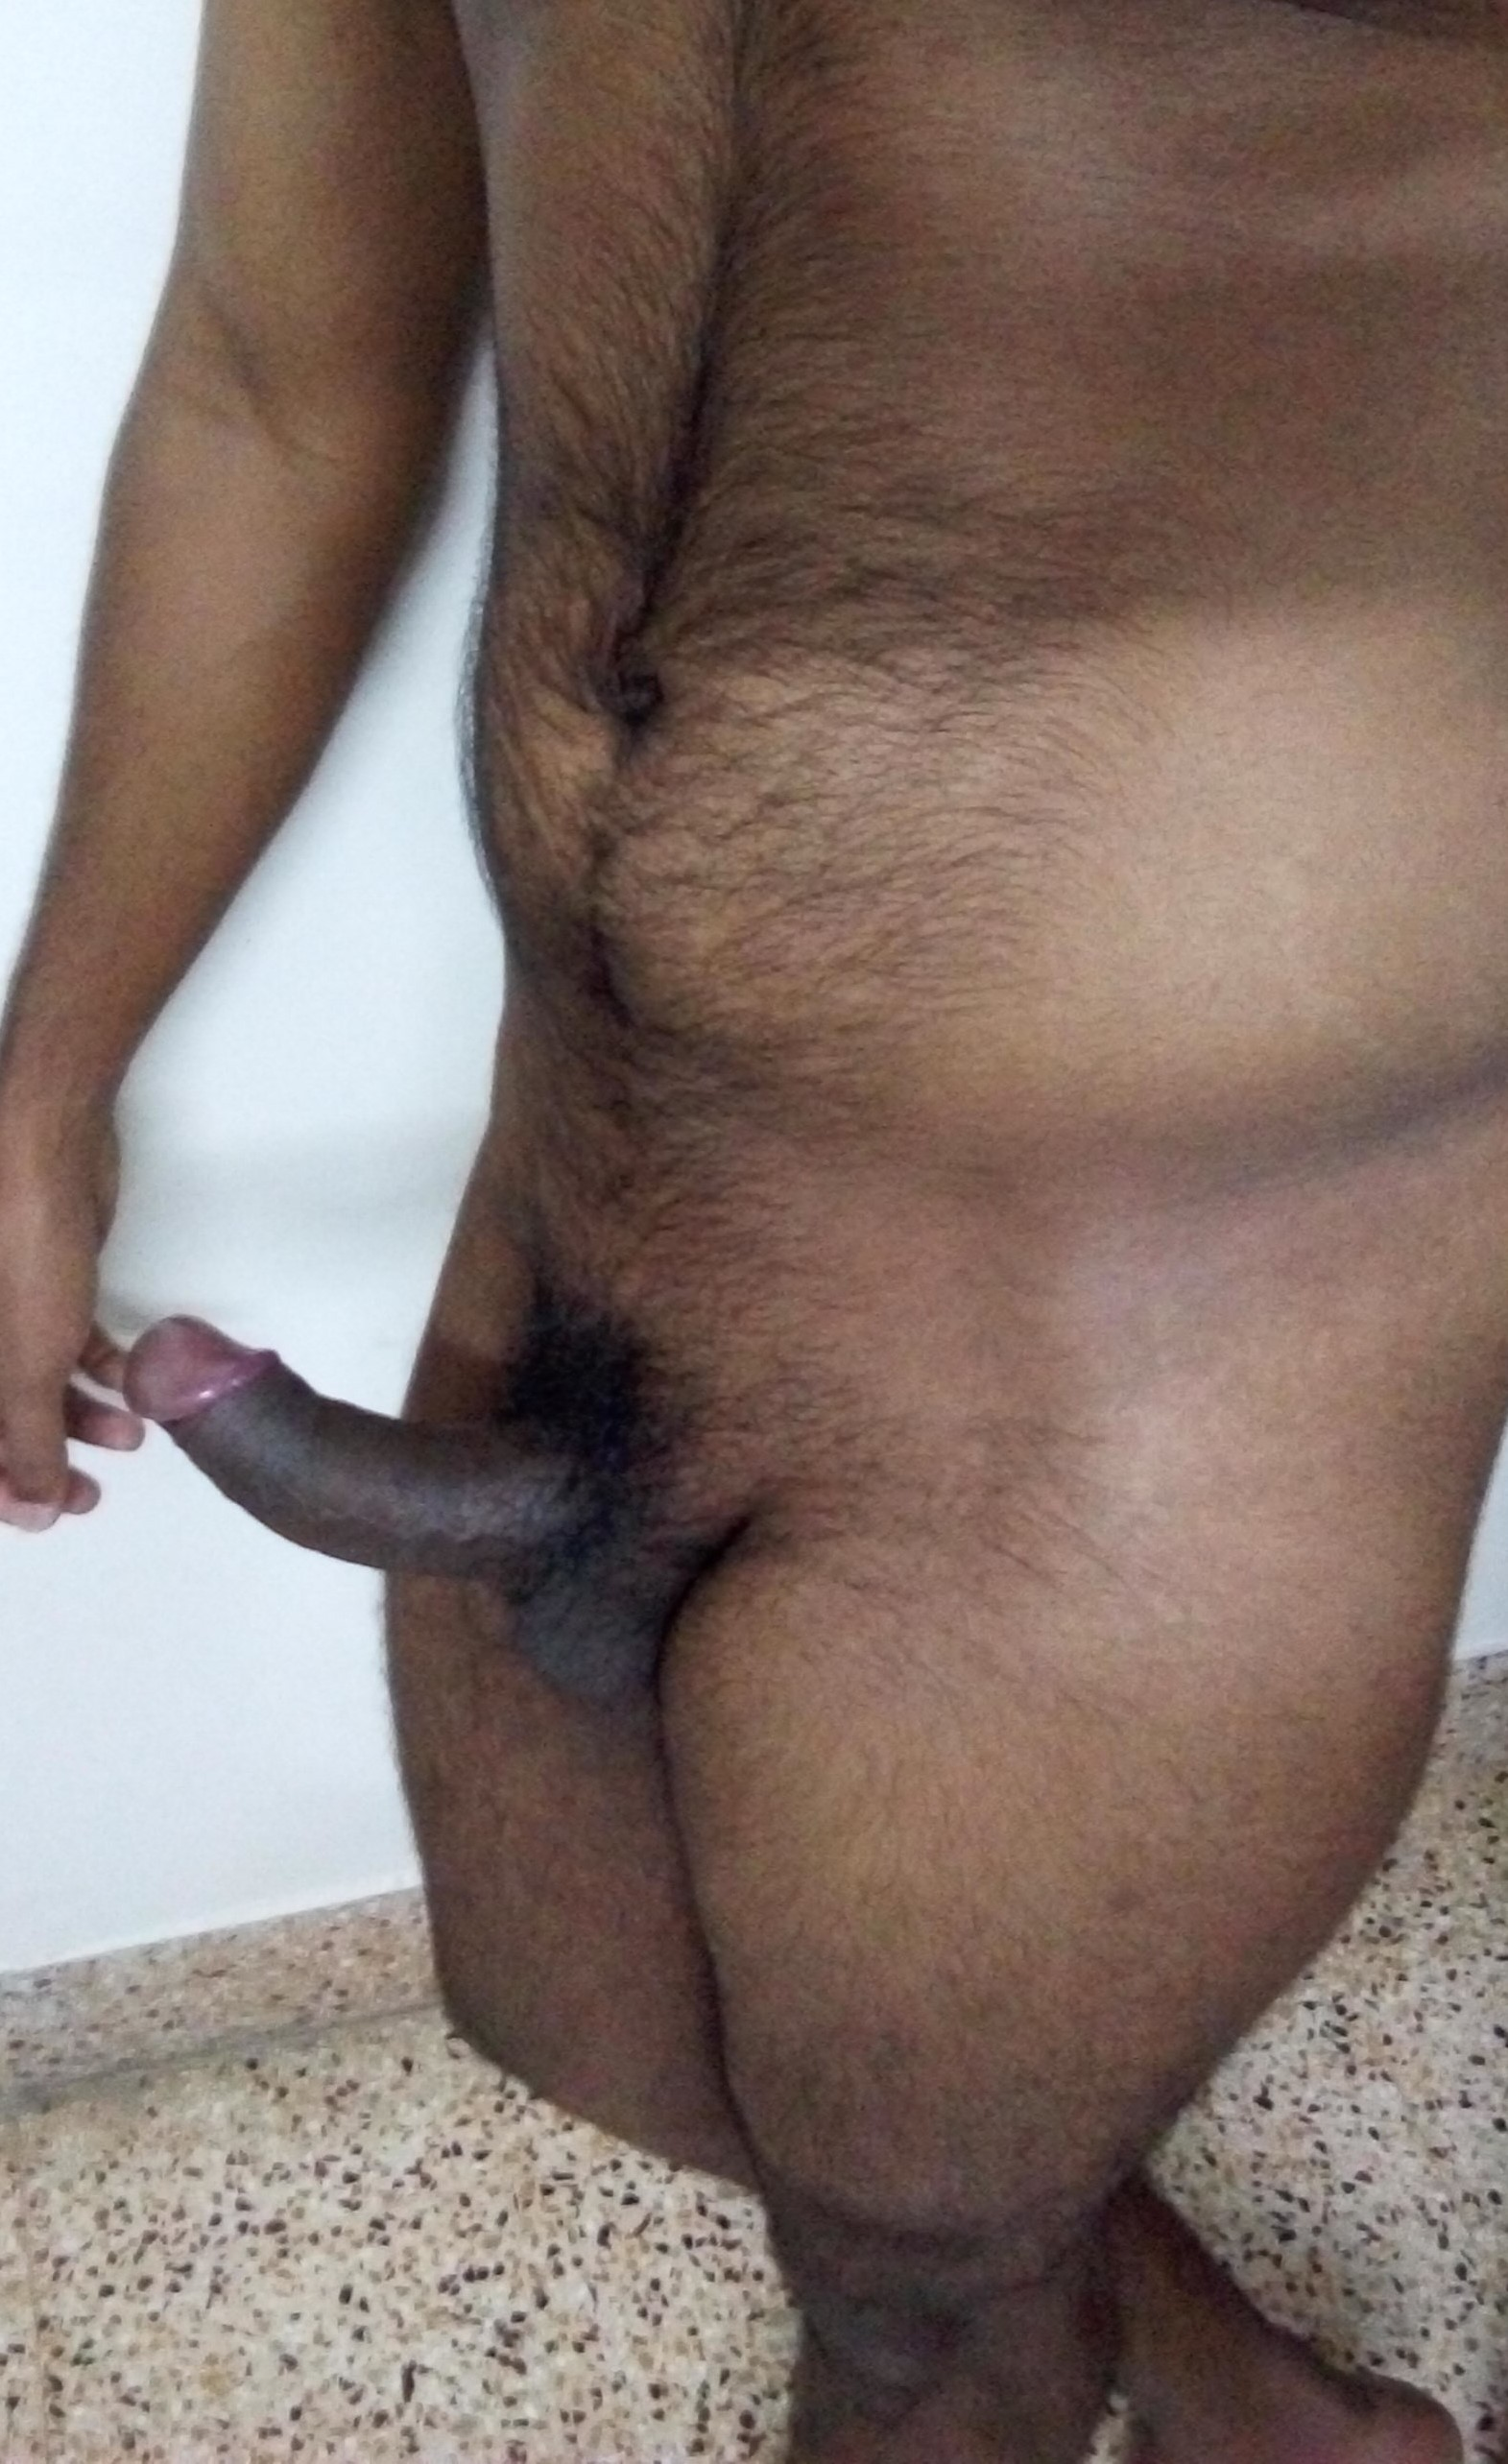 Boy masturbation kamalesh tamil cock situation familiar